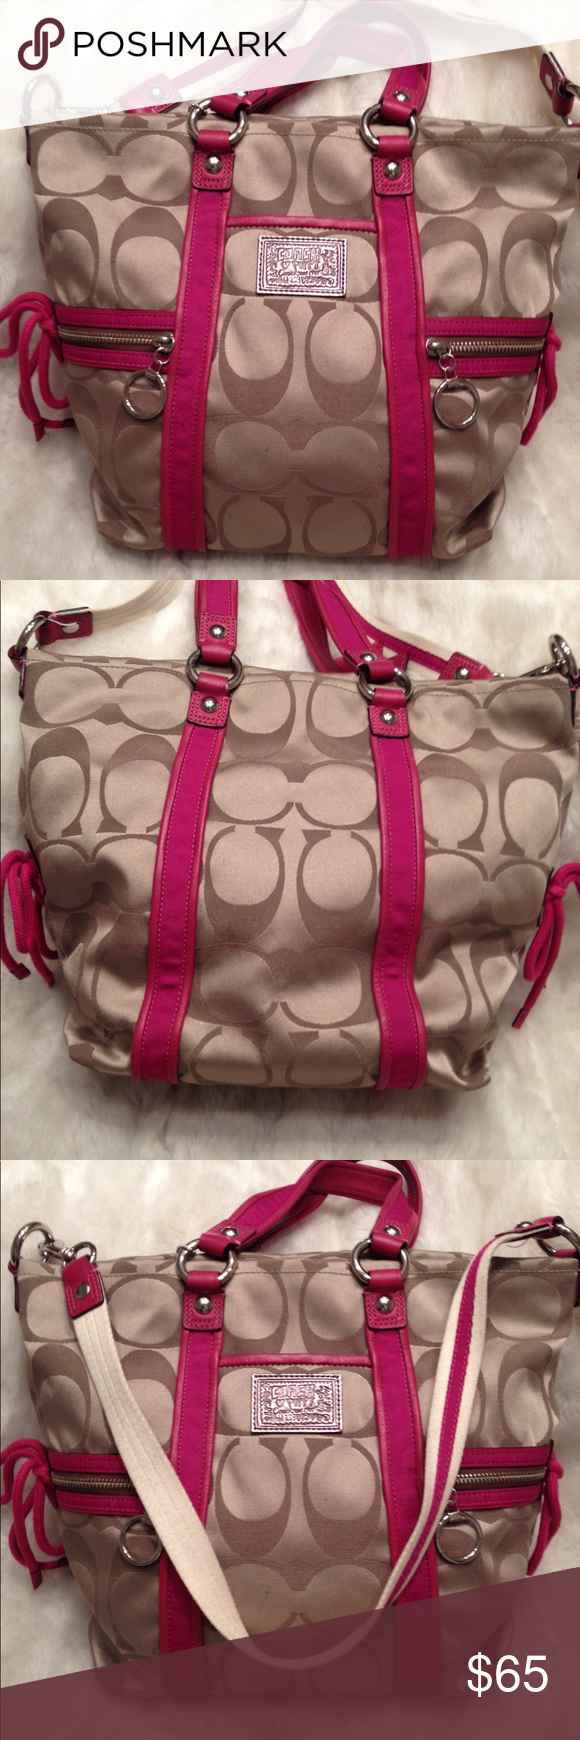 EUC COACH Poppy Tote COACH#C0969-13843. Only flaw is one small pen mark on the liner shown in pic. Good straps. Lots of space. Measures 12x13. Comes with the long strap. Coach Bags Totes